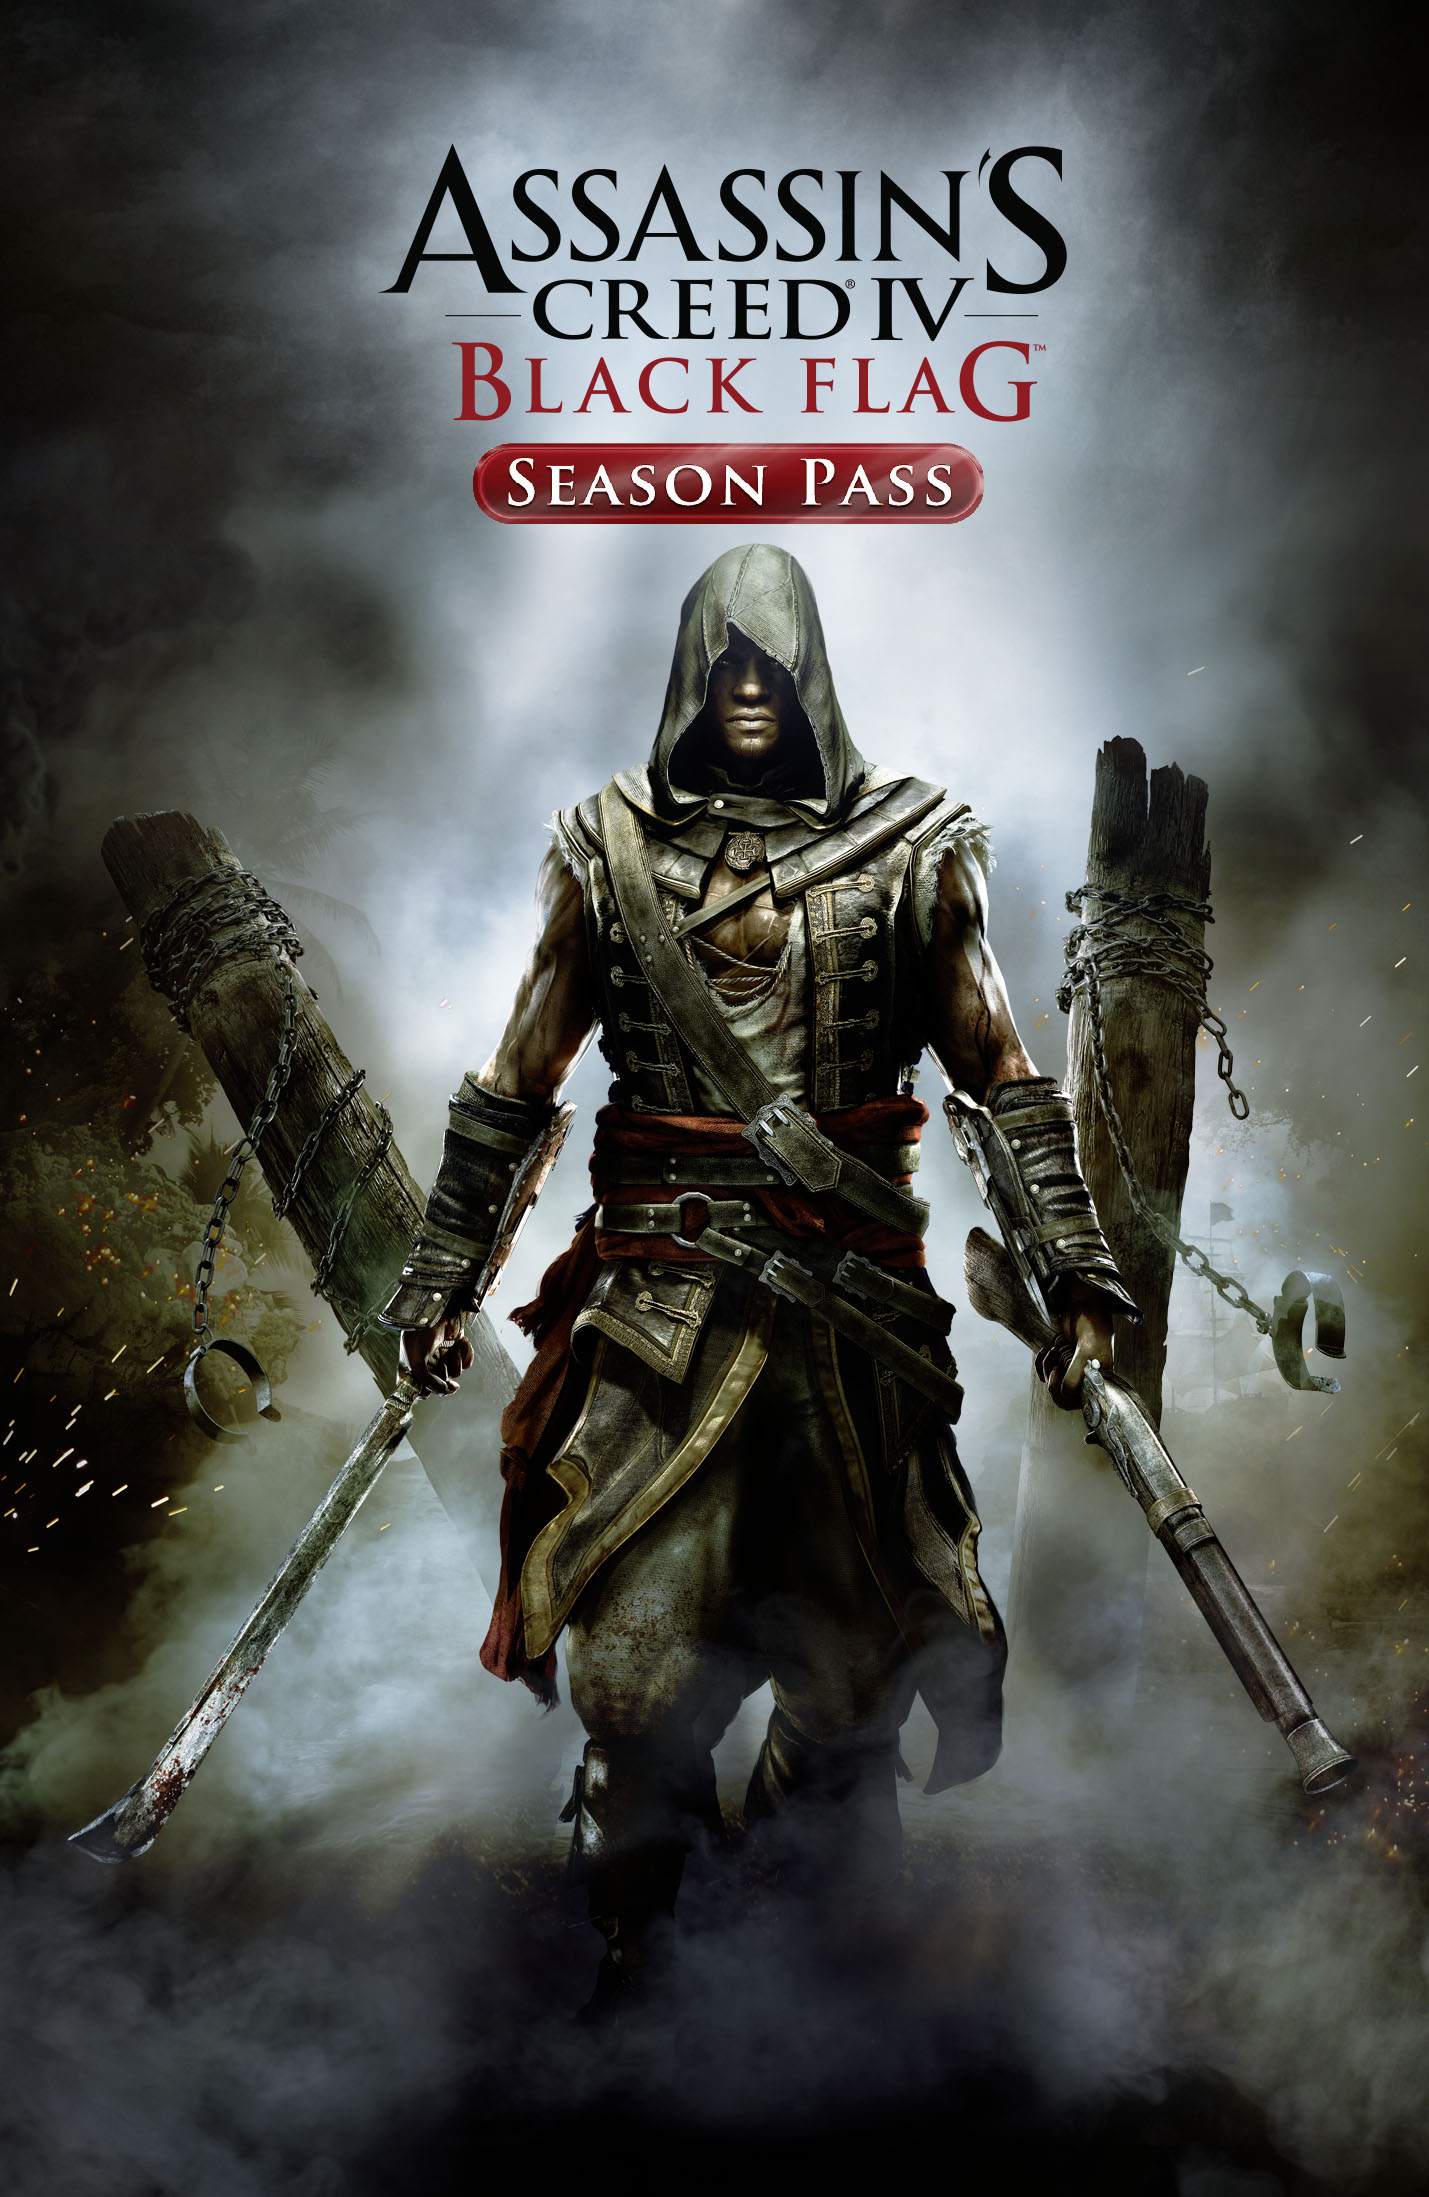 Assassin's Creed IV Black Flag Freedom Cry DLC XBOX 360 Torrent